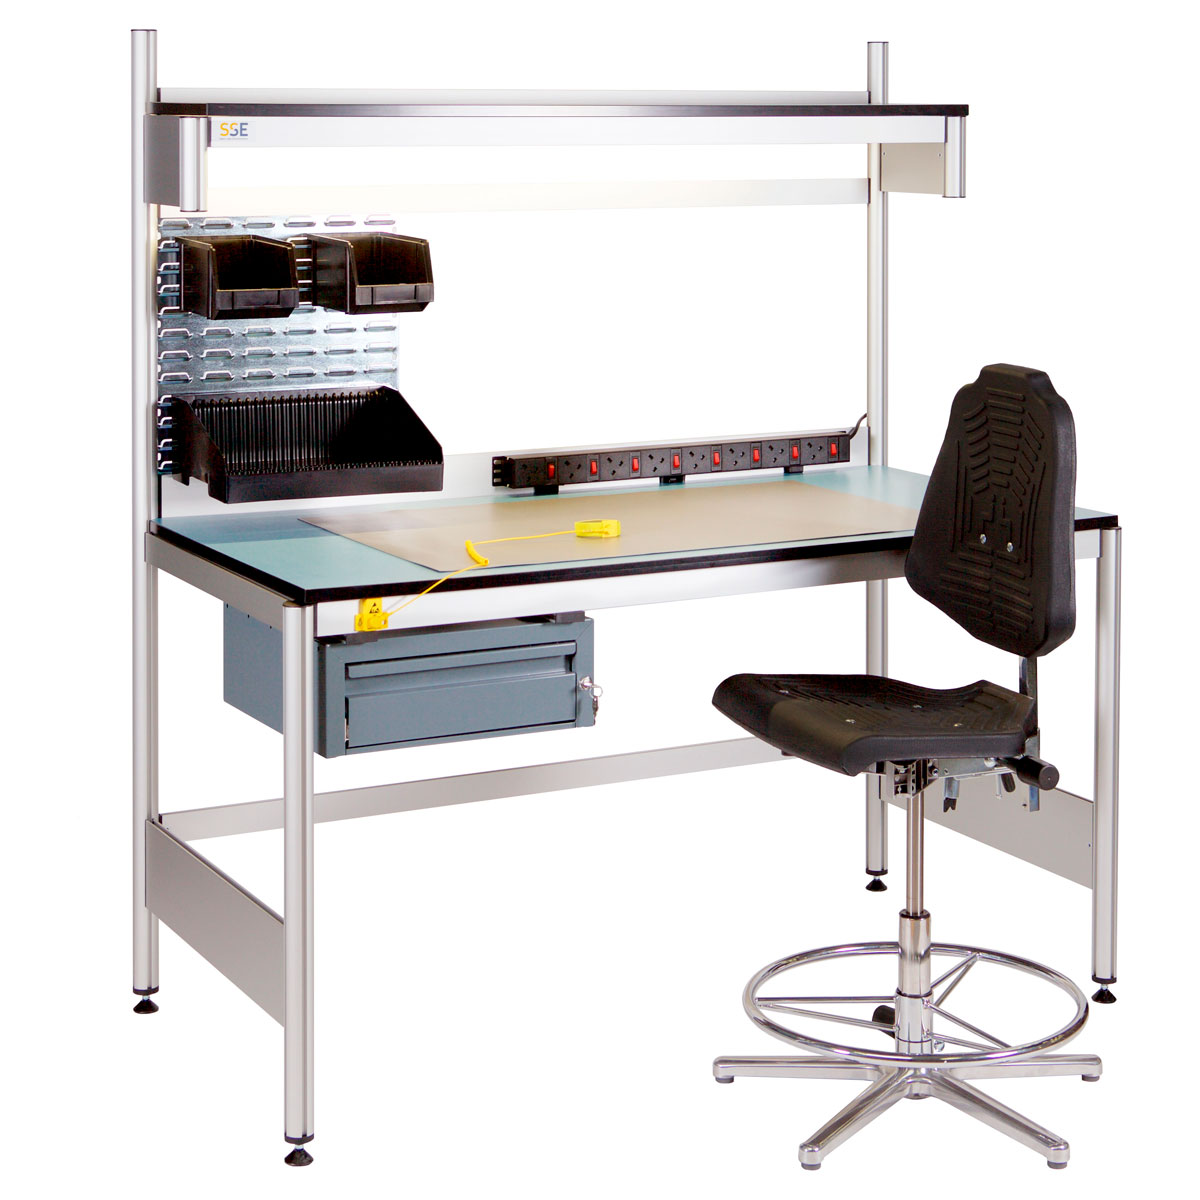 APS ESD Workbenches Static Safe Environments